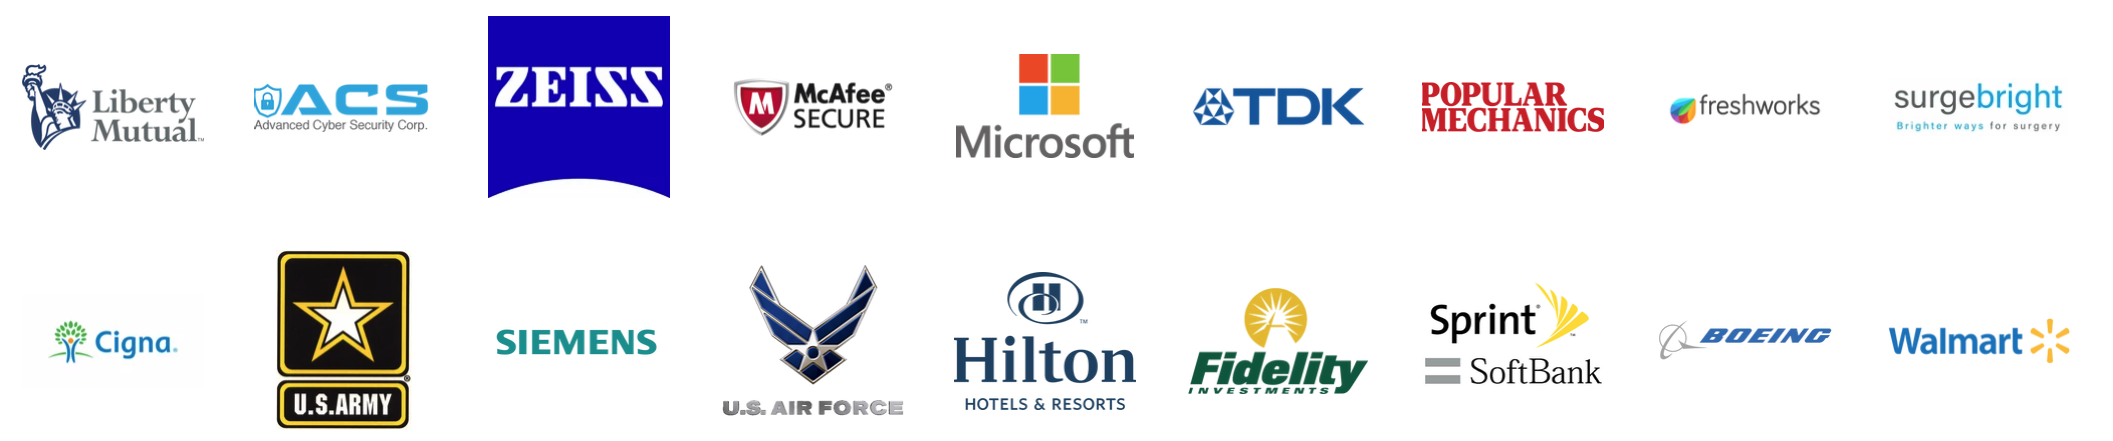 Recent work. Includes Liberty Mutual, ACS, Zeiss, McAfee Secure, Microsoft, Freshworks, Surgebright Medical, Cigna insurance, United States Army, U.S. Air Force, Hilton Hotels, Fidelity Investments. Sprint,SoftBank, Boeing, Walmart,